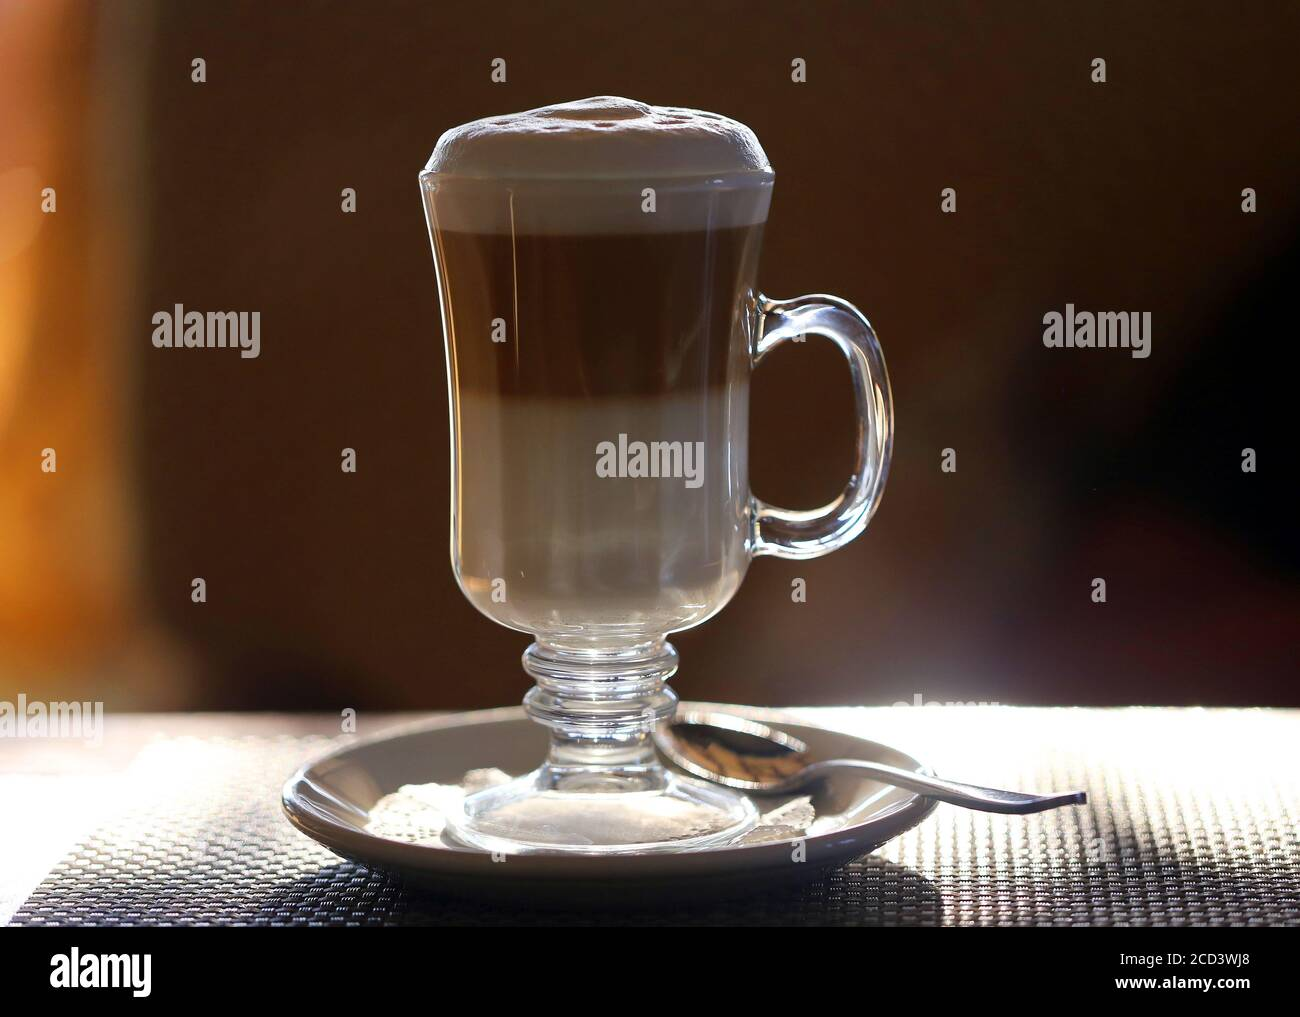 Photo Of A Beautiful Latte Coffee On The Table In A Cafe Advertising Background Of Coffee In A Restaurant Stock Photo Alamy